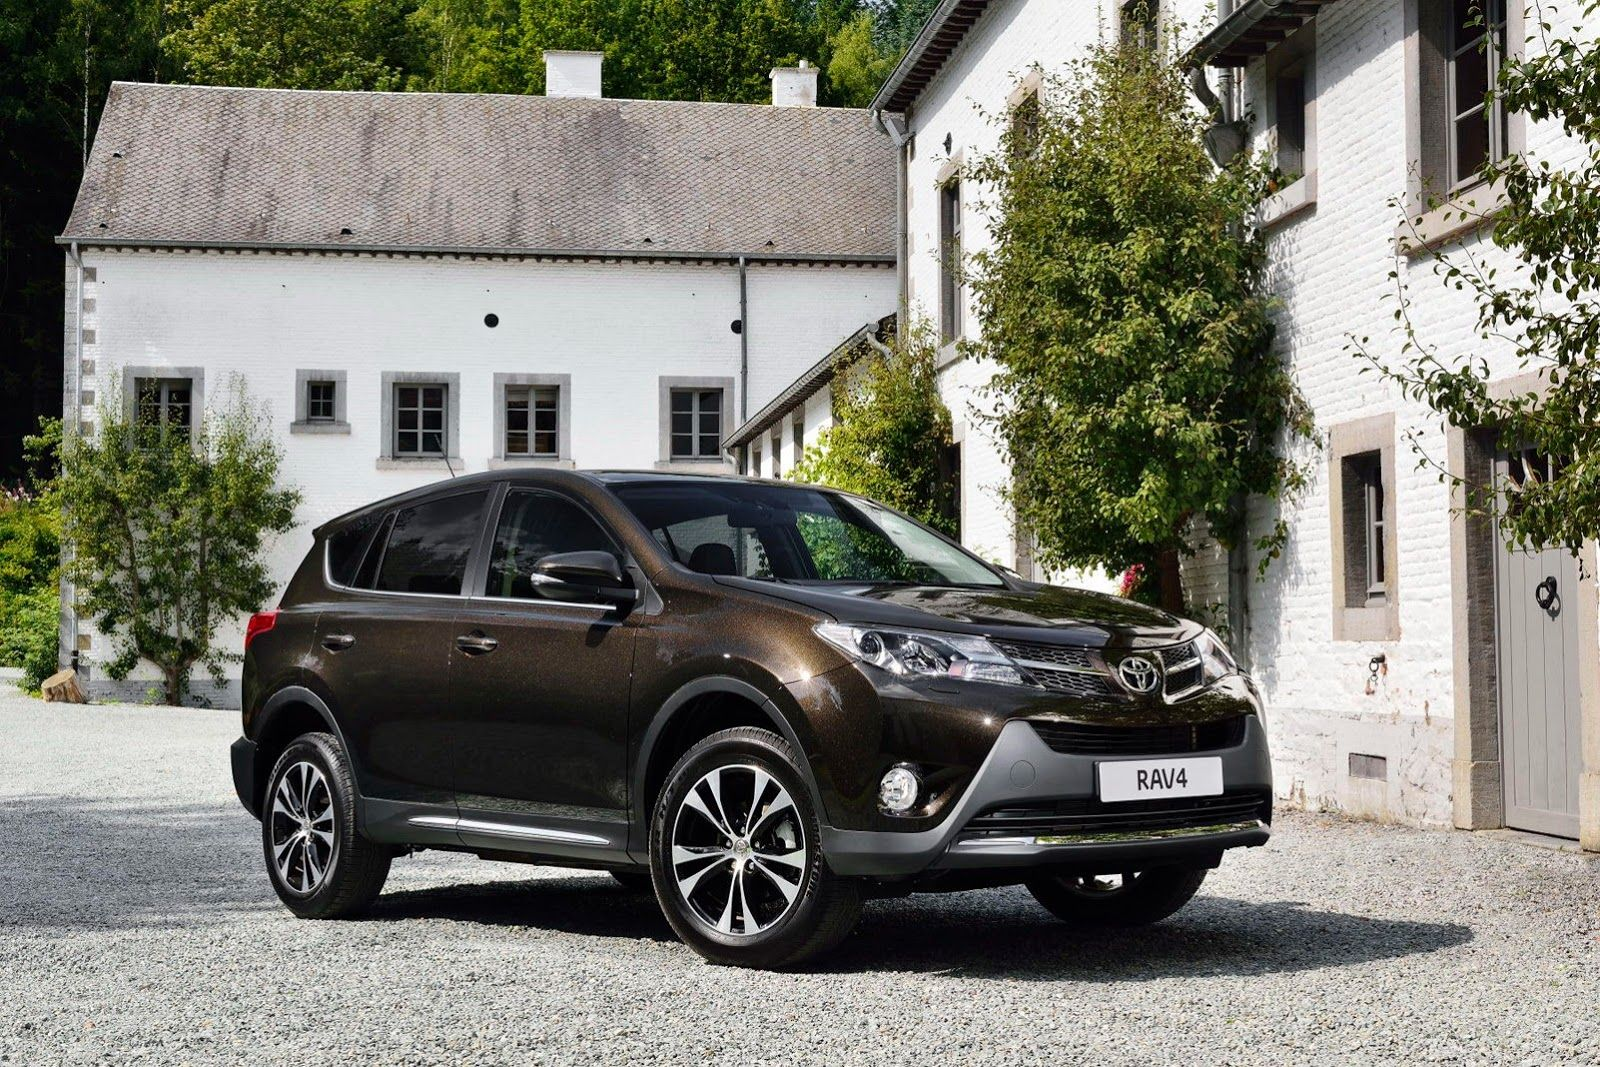 2015 toyota rav4 hybrid review and price cars pinterest toyota cars and dream cars